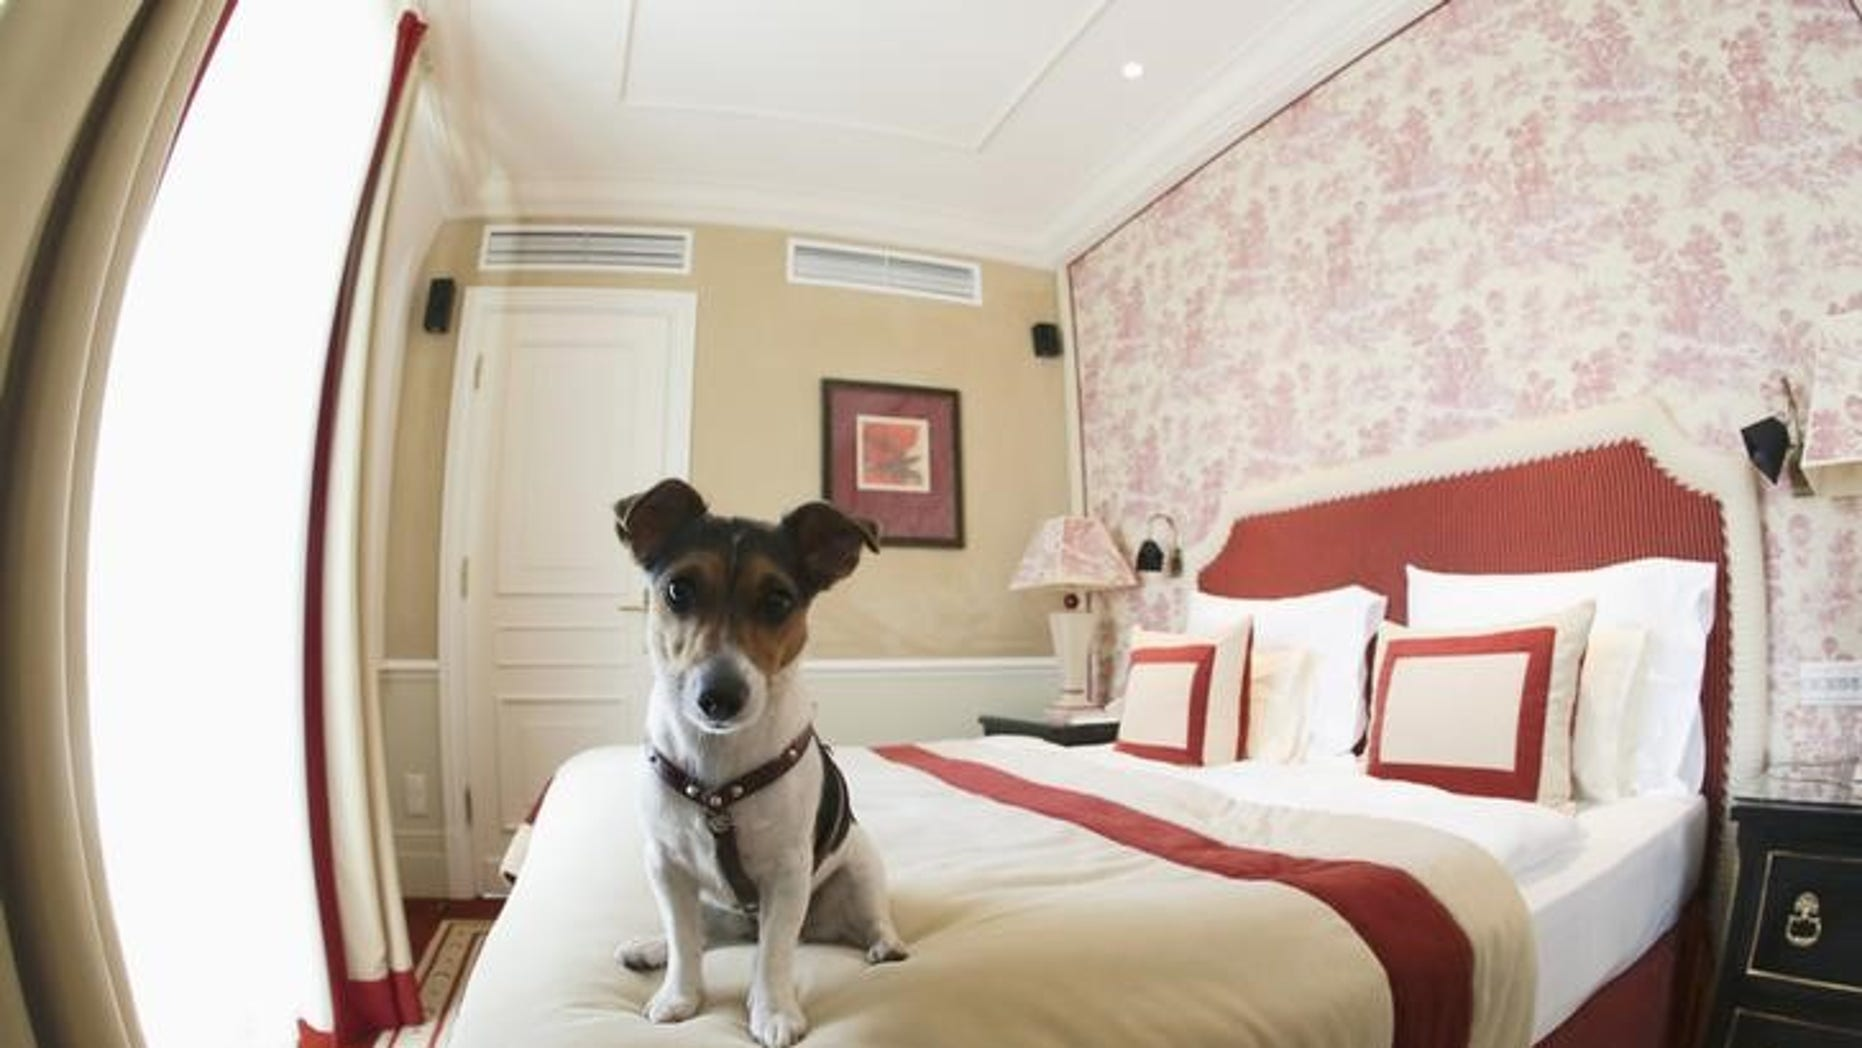 One-and-a-half-year-old Jack Russell Terrier, Ella, sits on a bed at Hotel Sacher in Vienna July 30, 2013. REUTERS/Leonhard Foeger